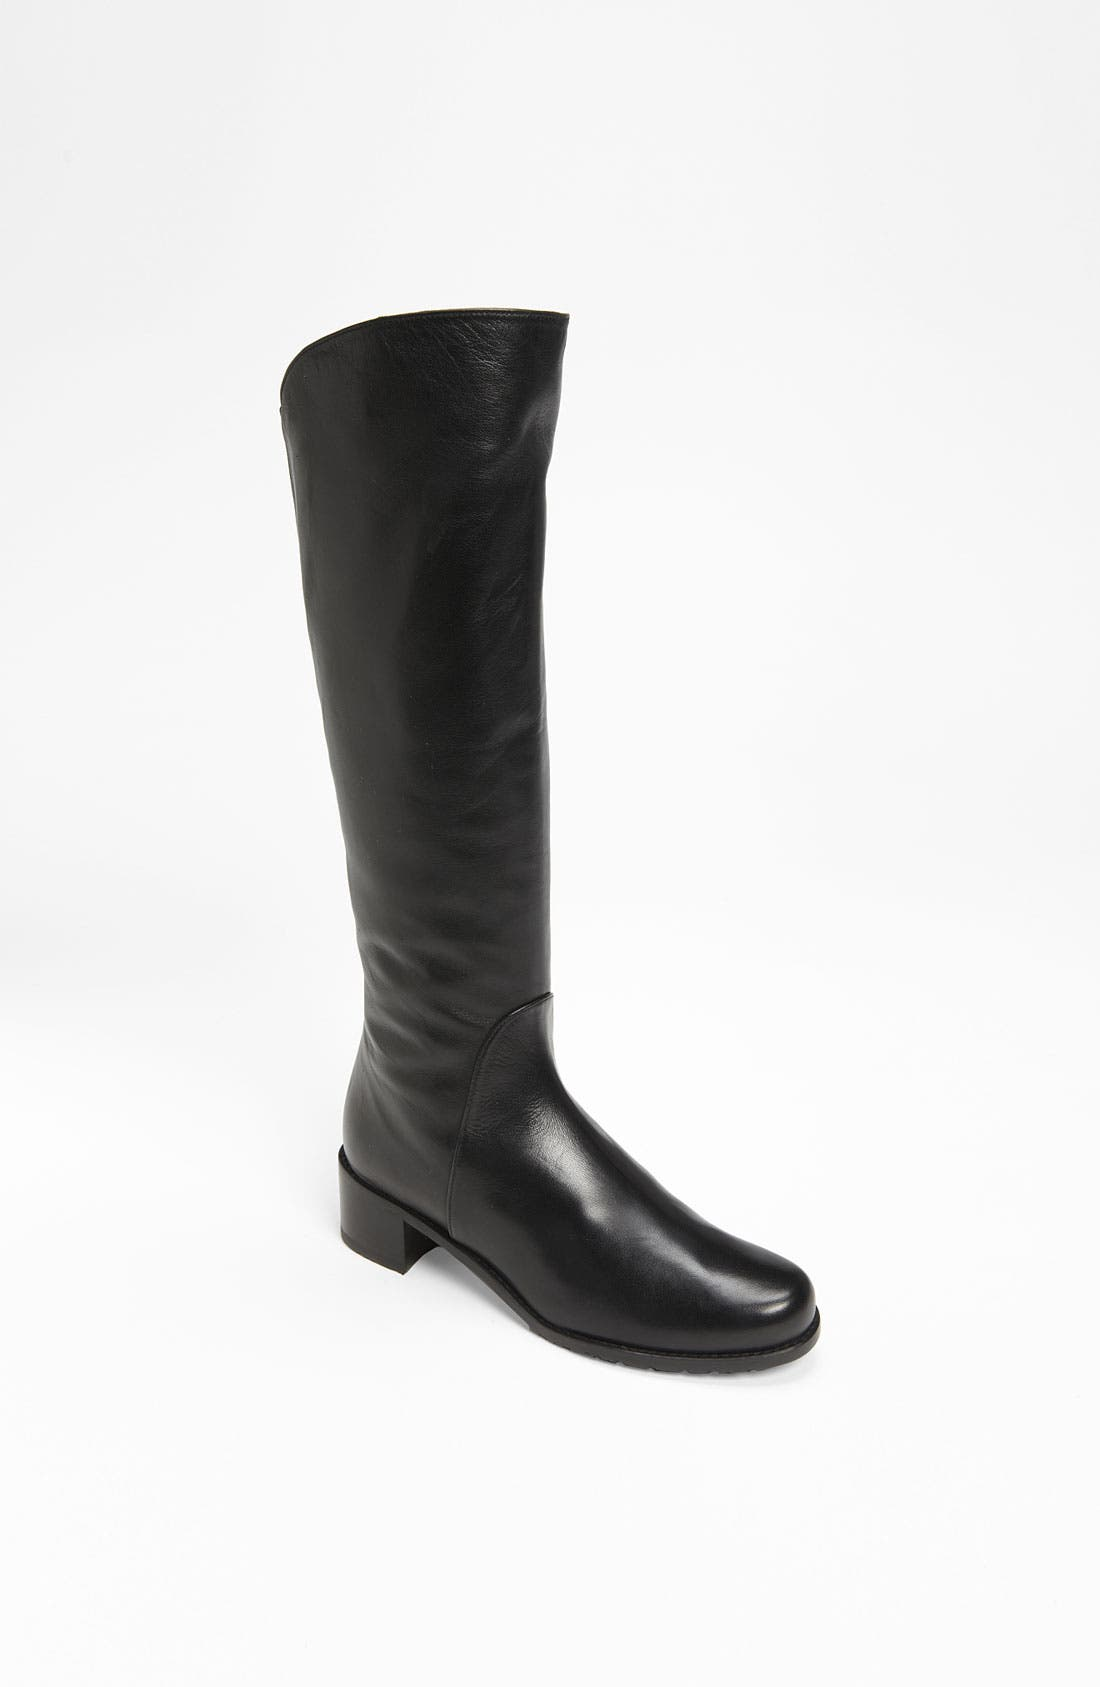 Alternate Image 1 Selected - Stuart Weitzman 'Arlington' Boot